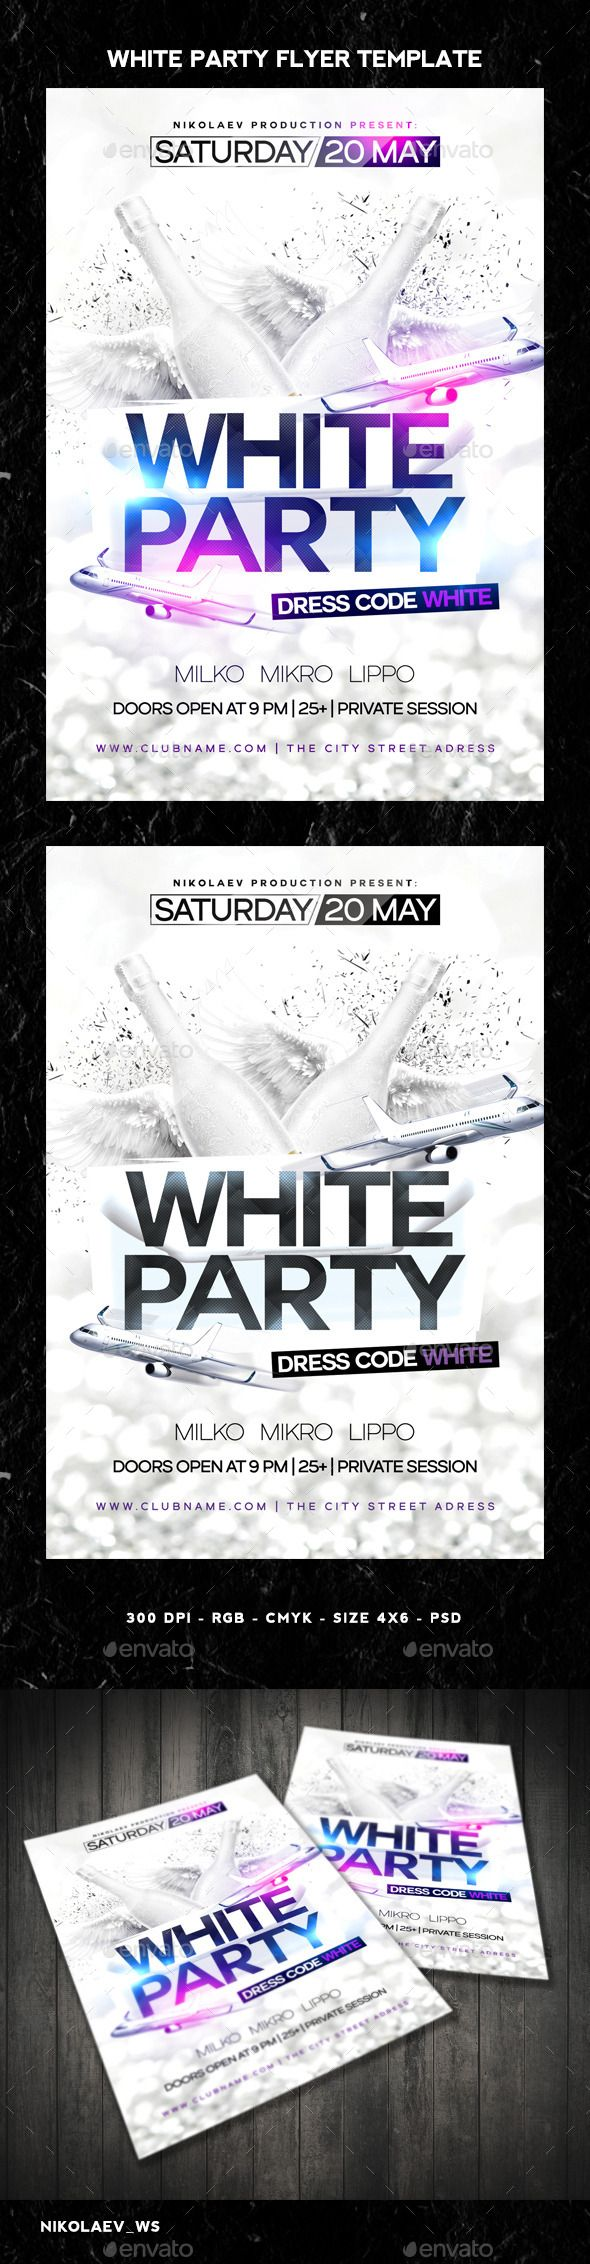 White Party Flyer (CS3, 4x6, all in white, bottles, carpet, christmas event, classy, deluxe, dress, dress code, elegant, fancy, fashion, glamour, modern, party flyer, poster template, PSD flyers, session, sexy, trendy, vintage, vip, weekend, white)